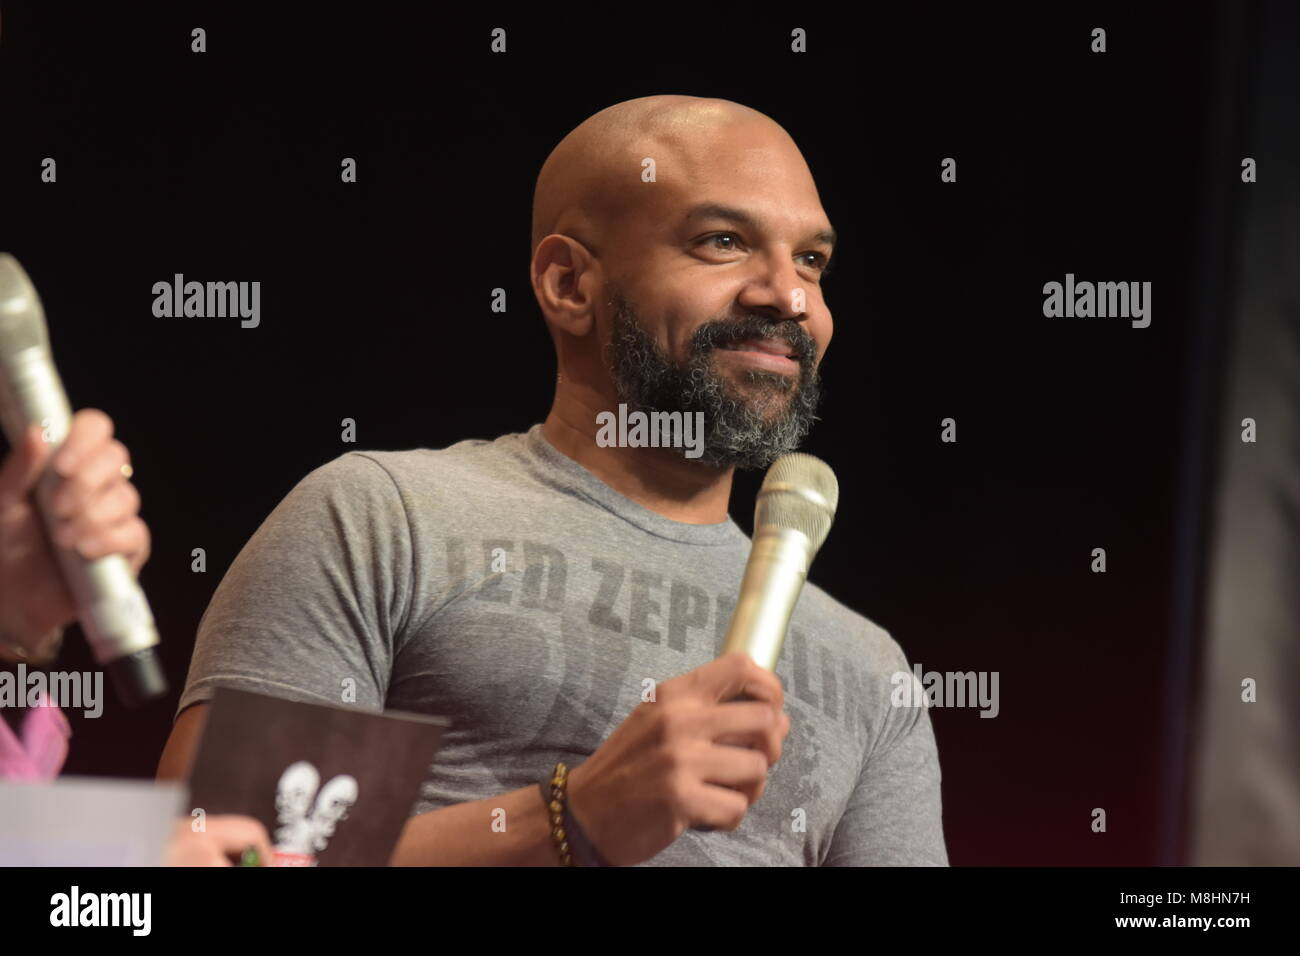 MANNHEIM, GERMANY - MARCH 17: Actor Khary Payton (Ezekiel on The Walking Dead) at the Walker Stalker Germany convention. - Stock Image